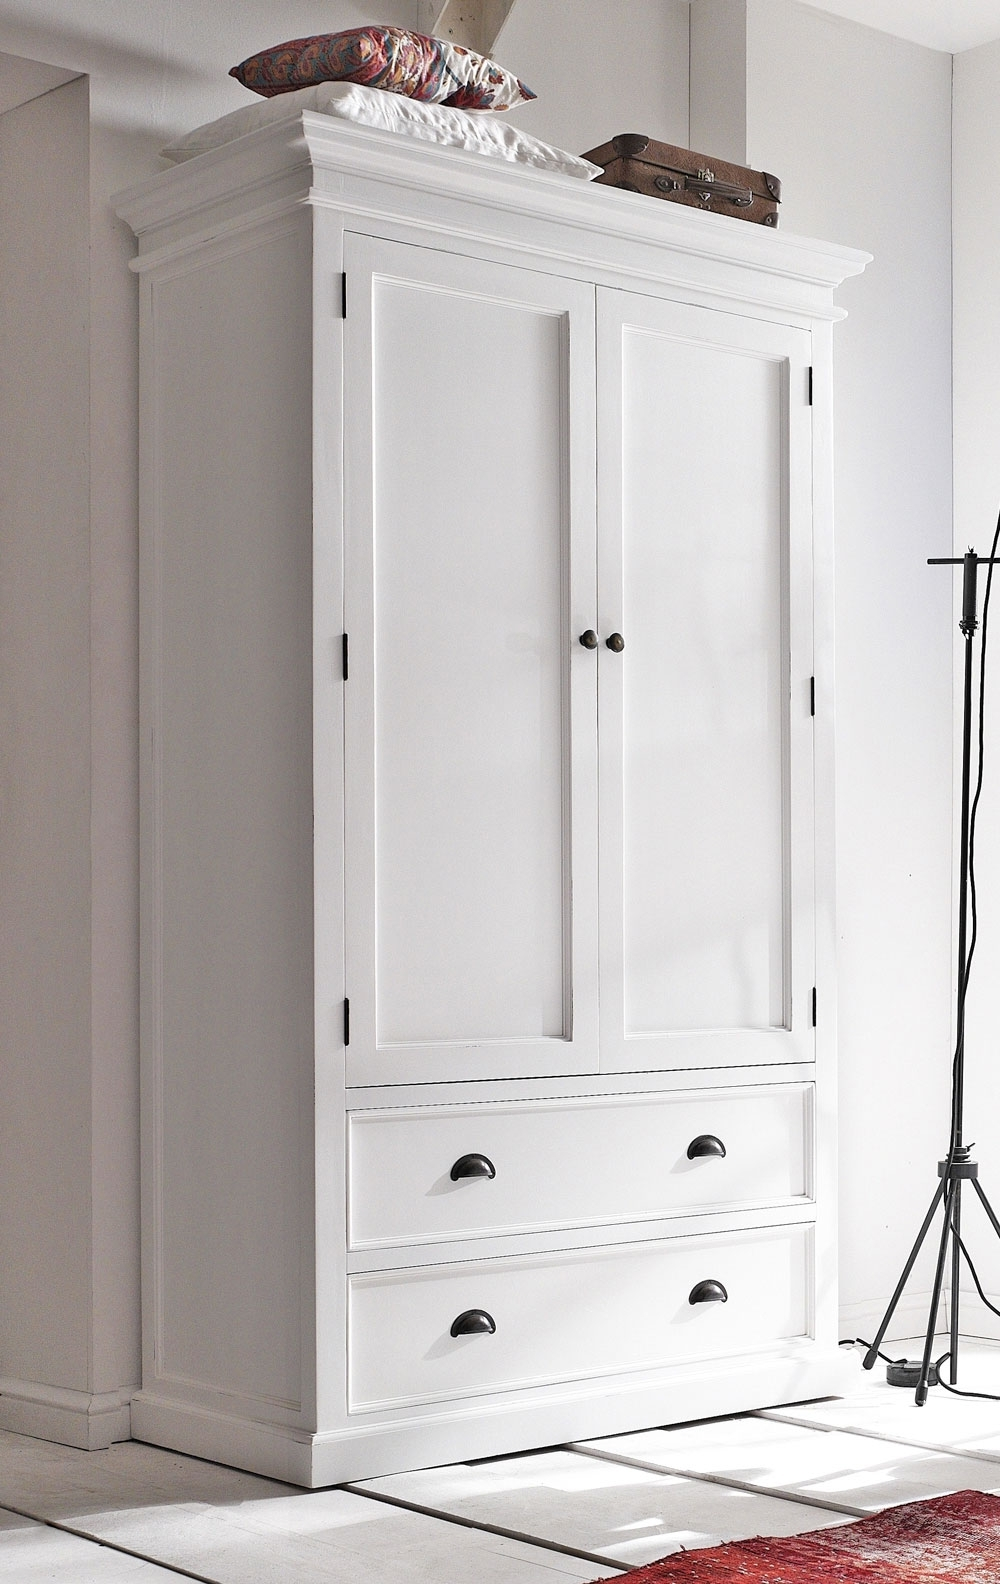 2017 White Antique Wardrobes Pertaining To 13 Vintage Closet Sets For Your Secret Fashionable Sanctuary (View 13 of 15)